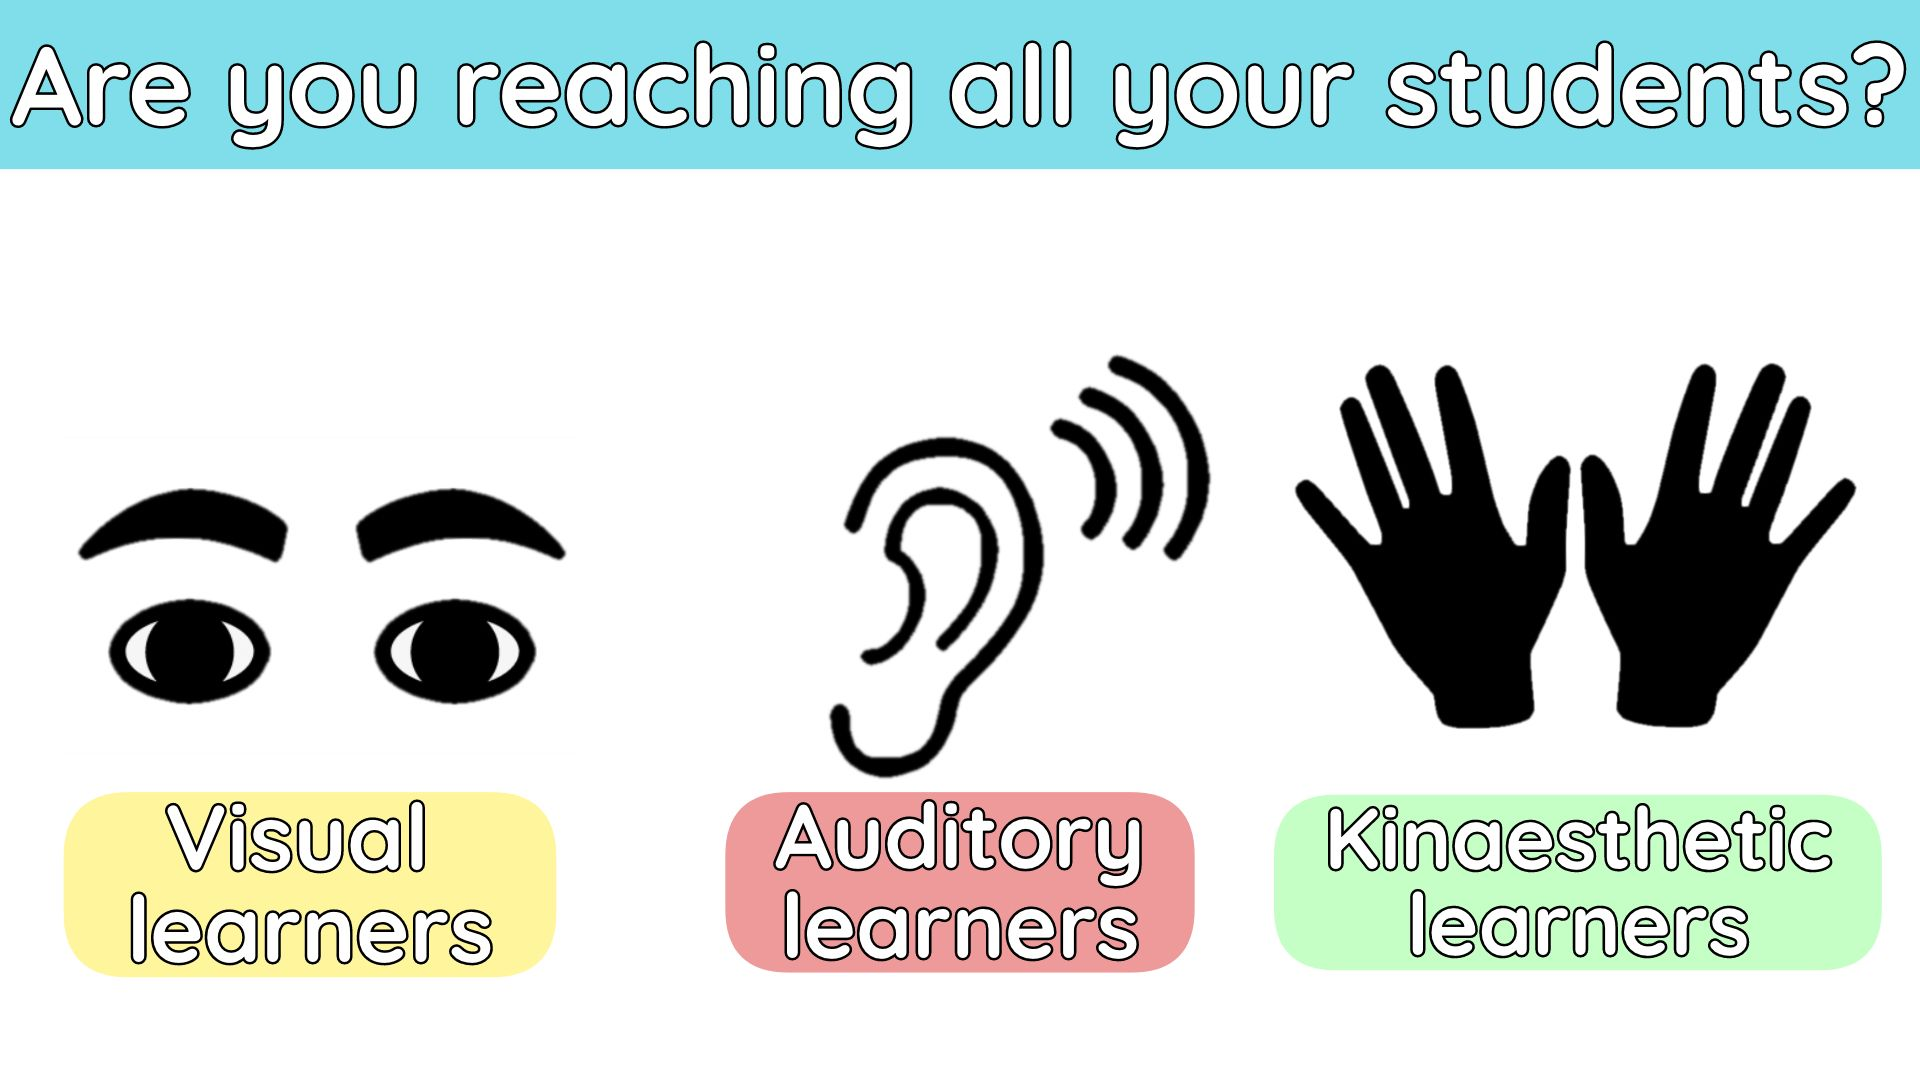 An infographic spotlighting the three types of learners.